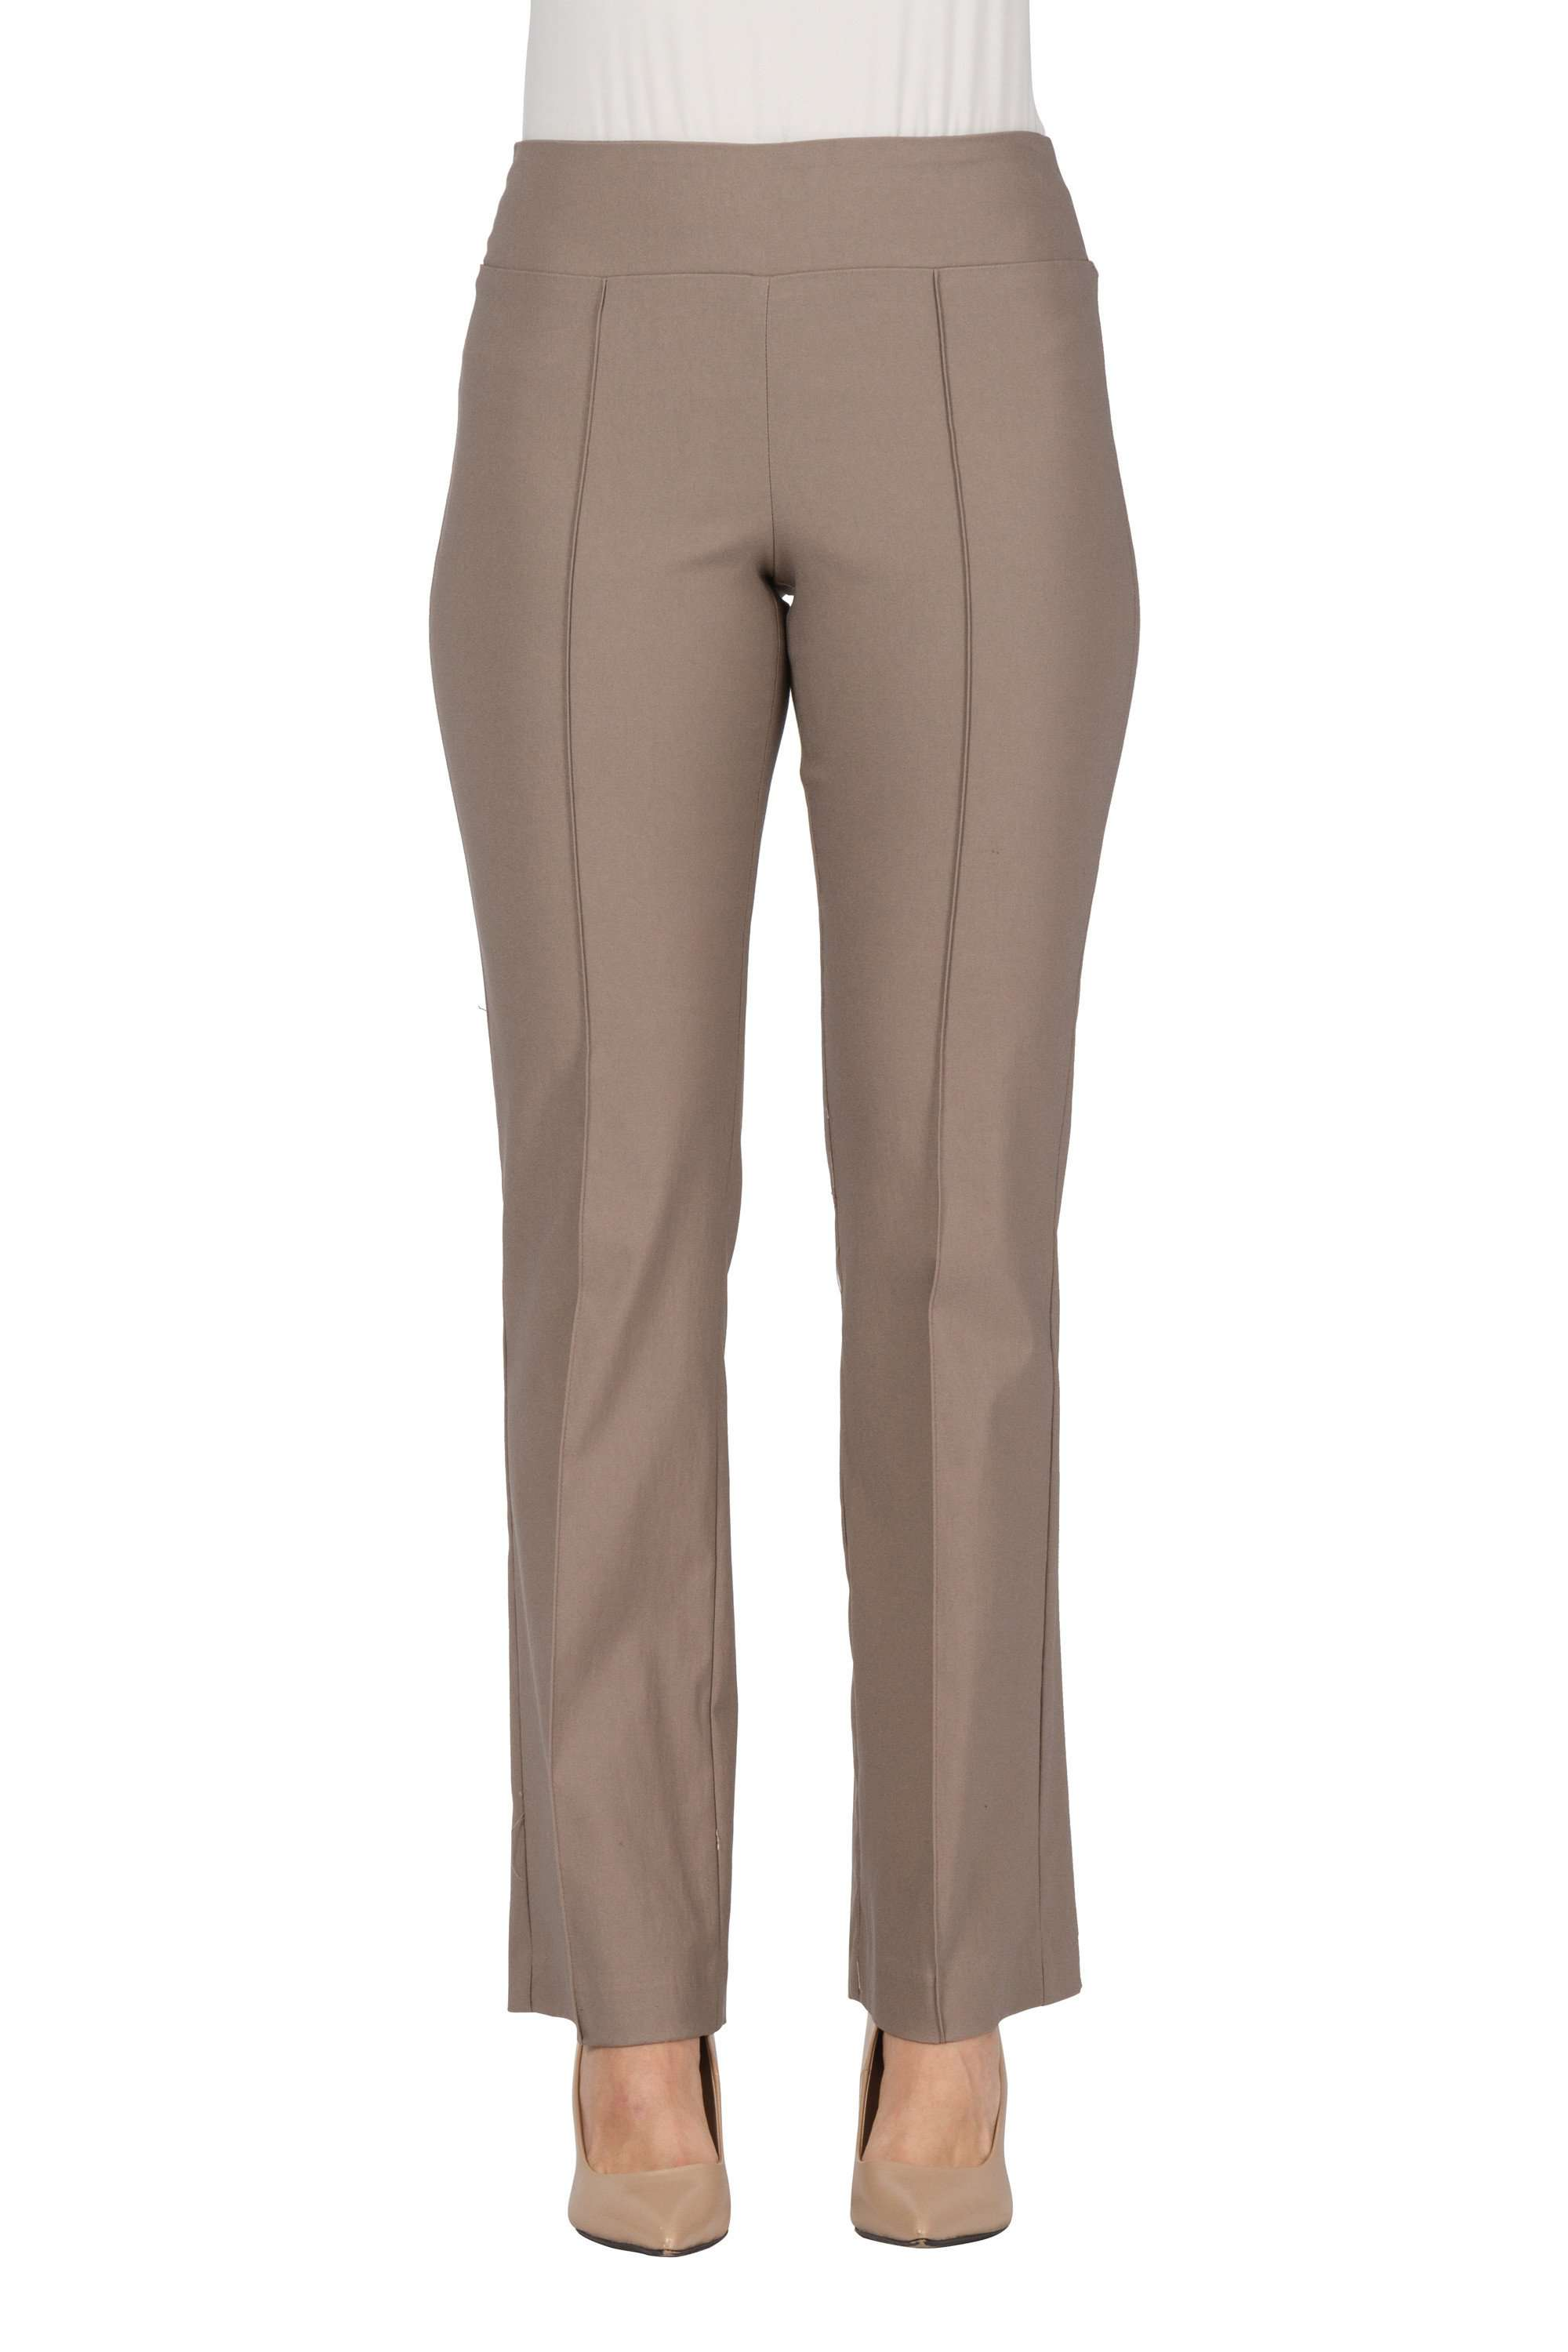 Women's Taupe Stretch Pants - Our Miracle Fit - Yvonne Marie - Yvonne Marie